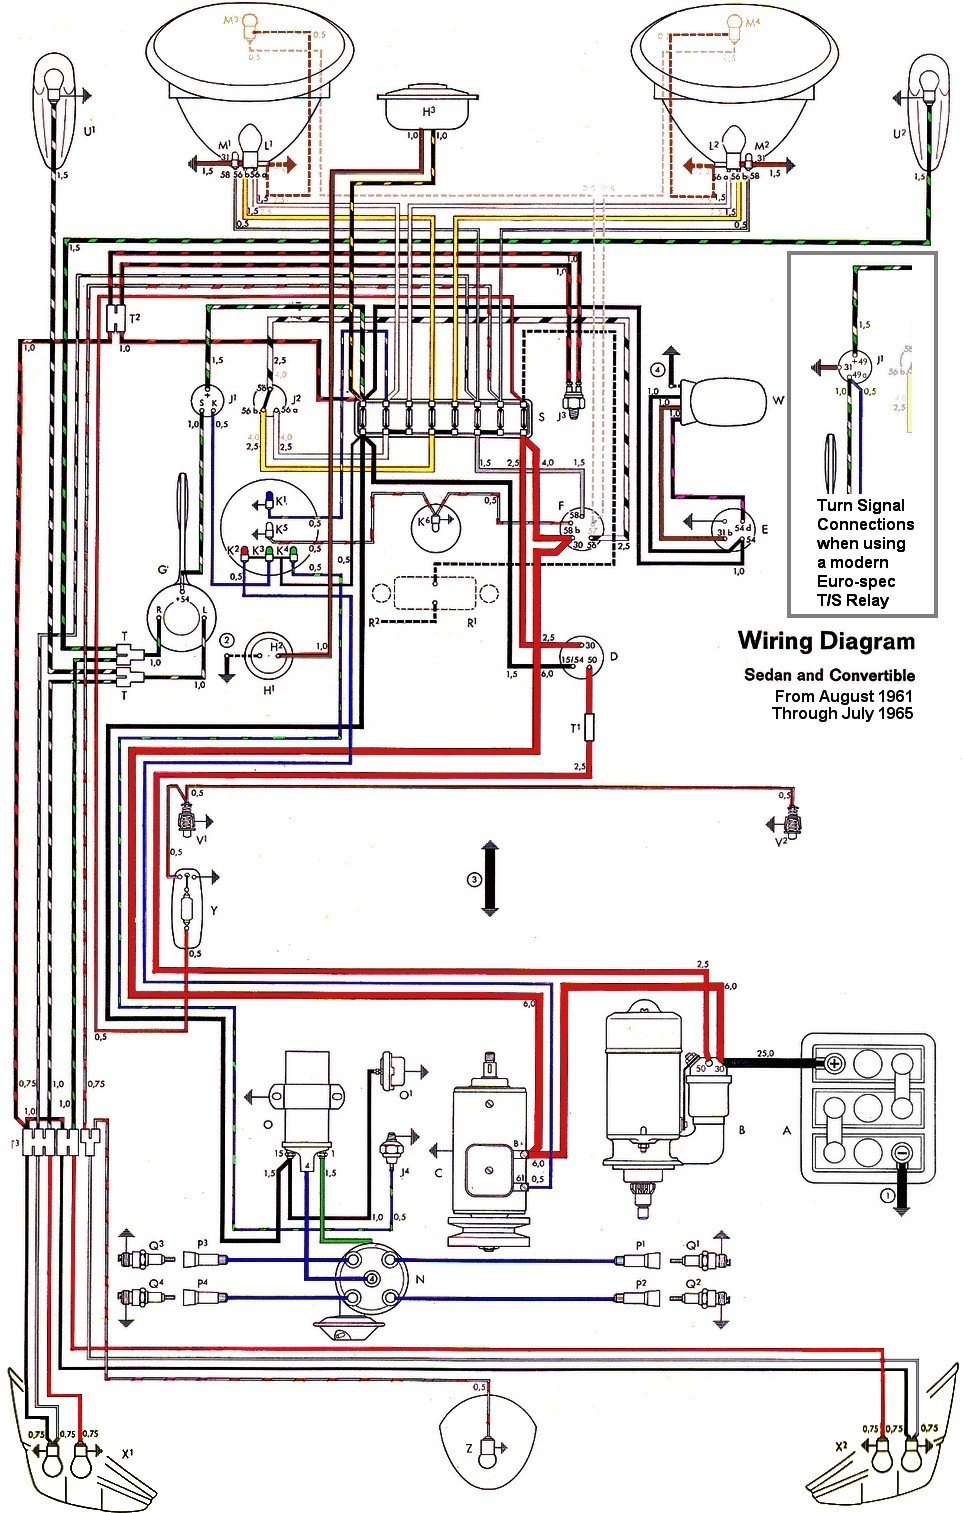 1960 vw wiring diagram schematics wiring diagram 2001 Volkswagen Beetle Wiring Diagram thesamba com type 1 wiring diagrams vw beetle generator wiring diagram 1960 vw wiring diagram